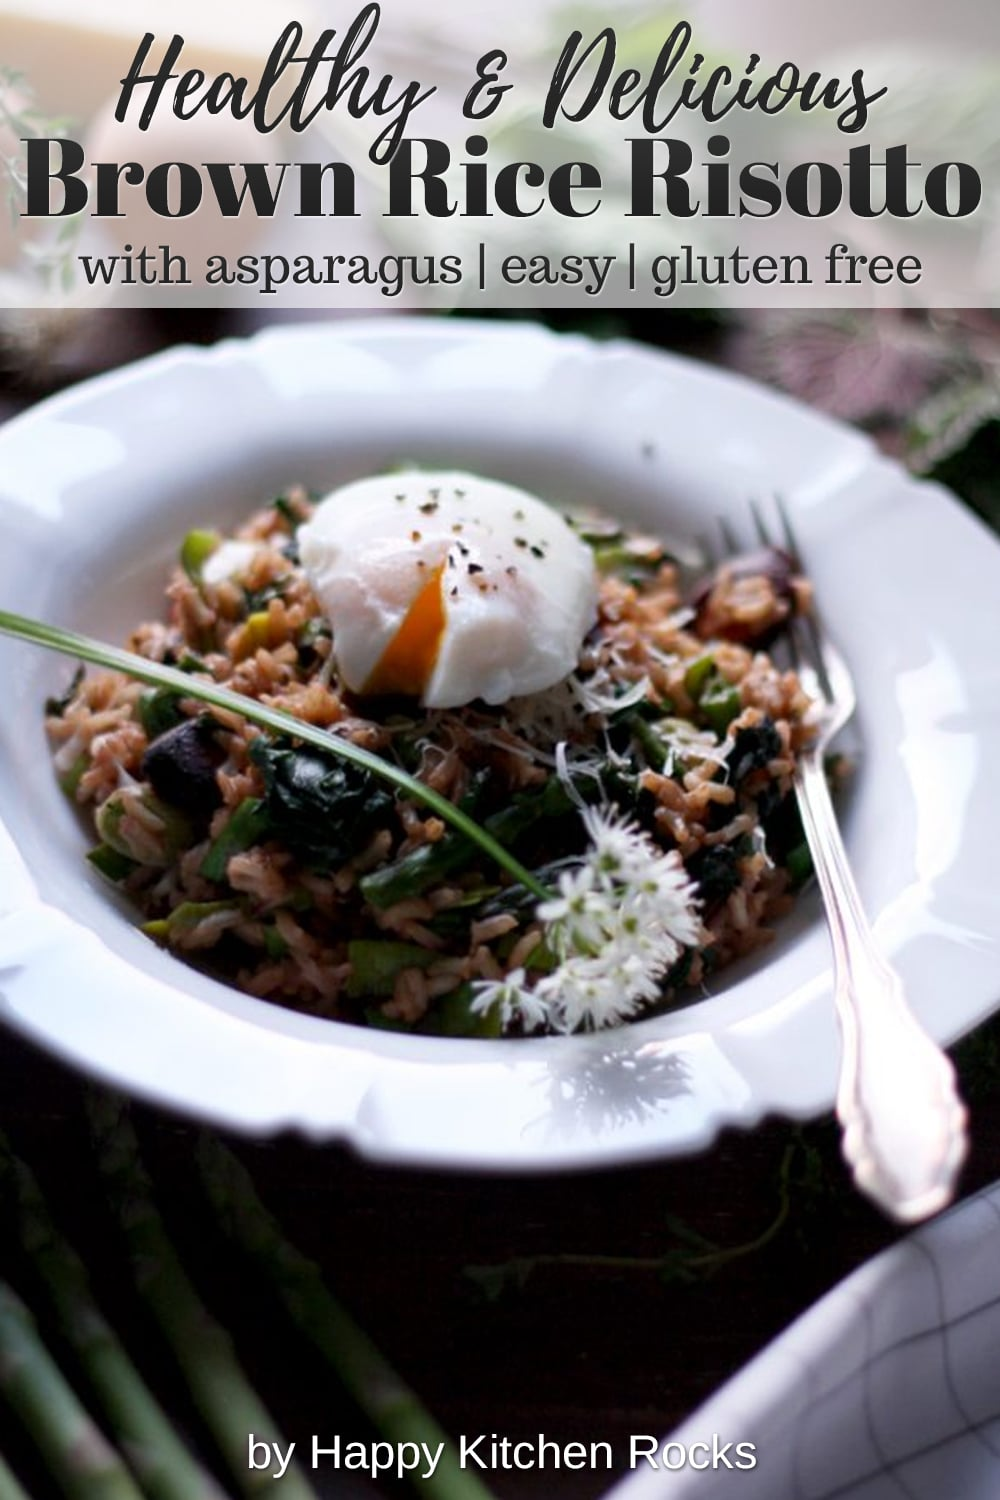 Spring Brown Rice Risotto with Asparagus Collage with Text Overlay